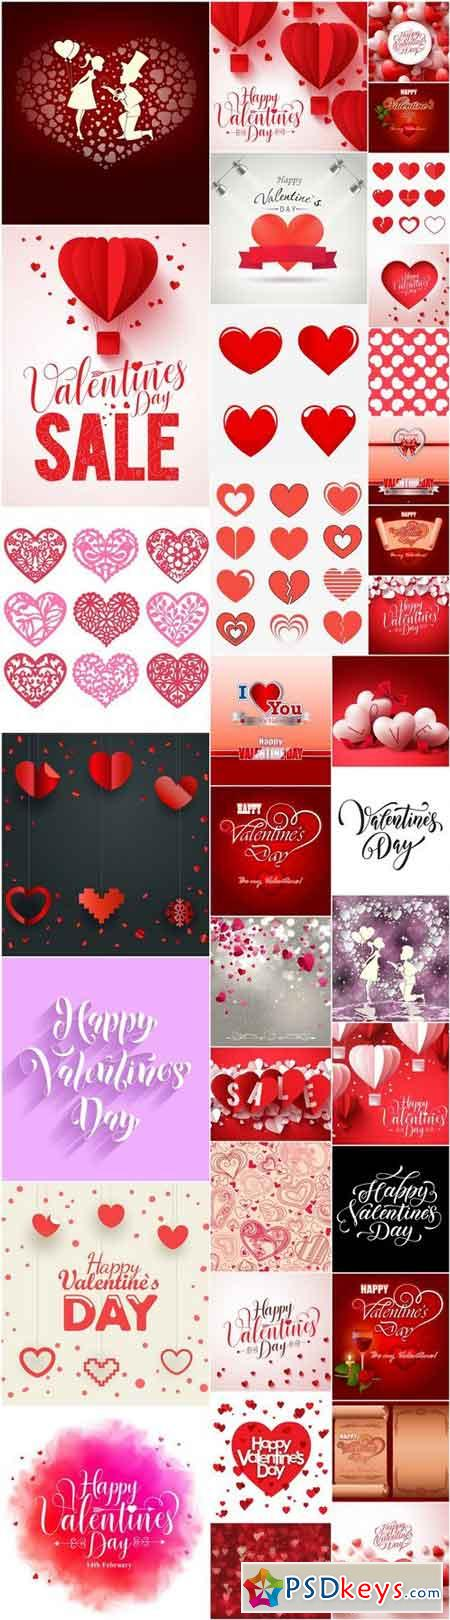 Happy Valentines Day Background #15 - 60 Vector